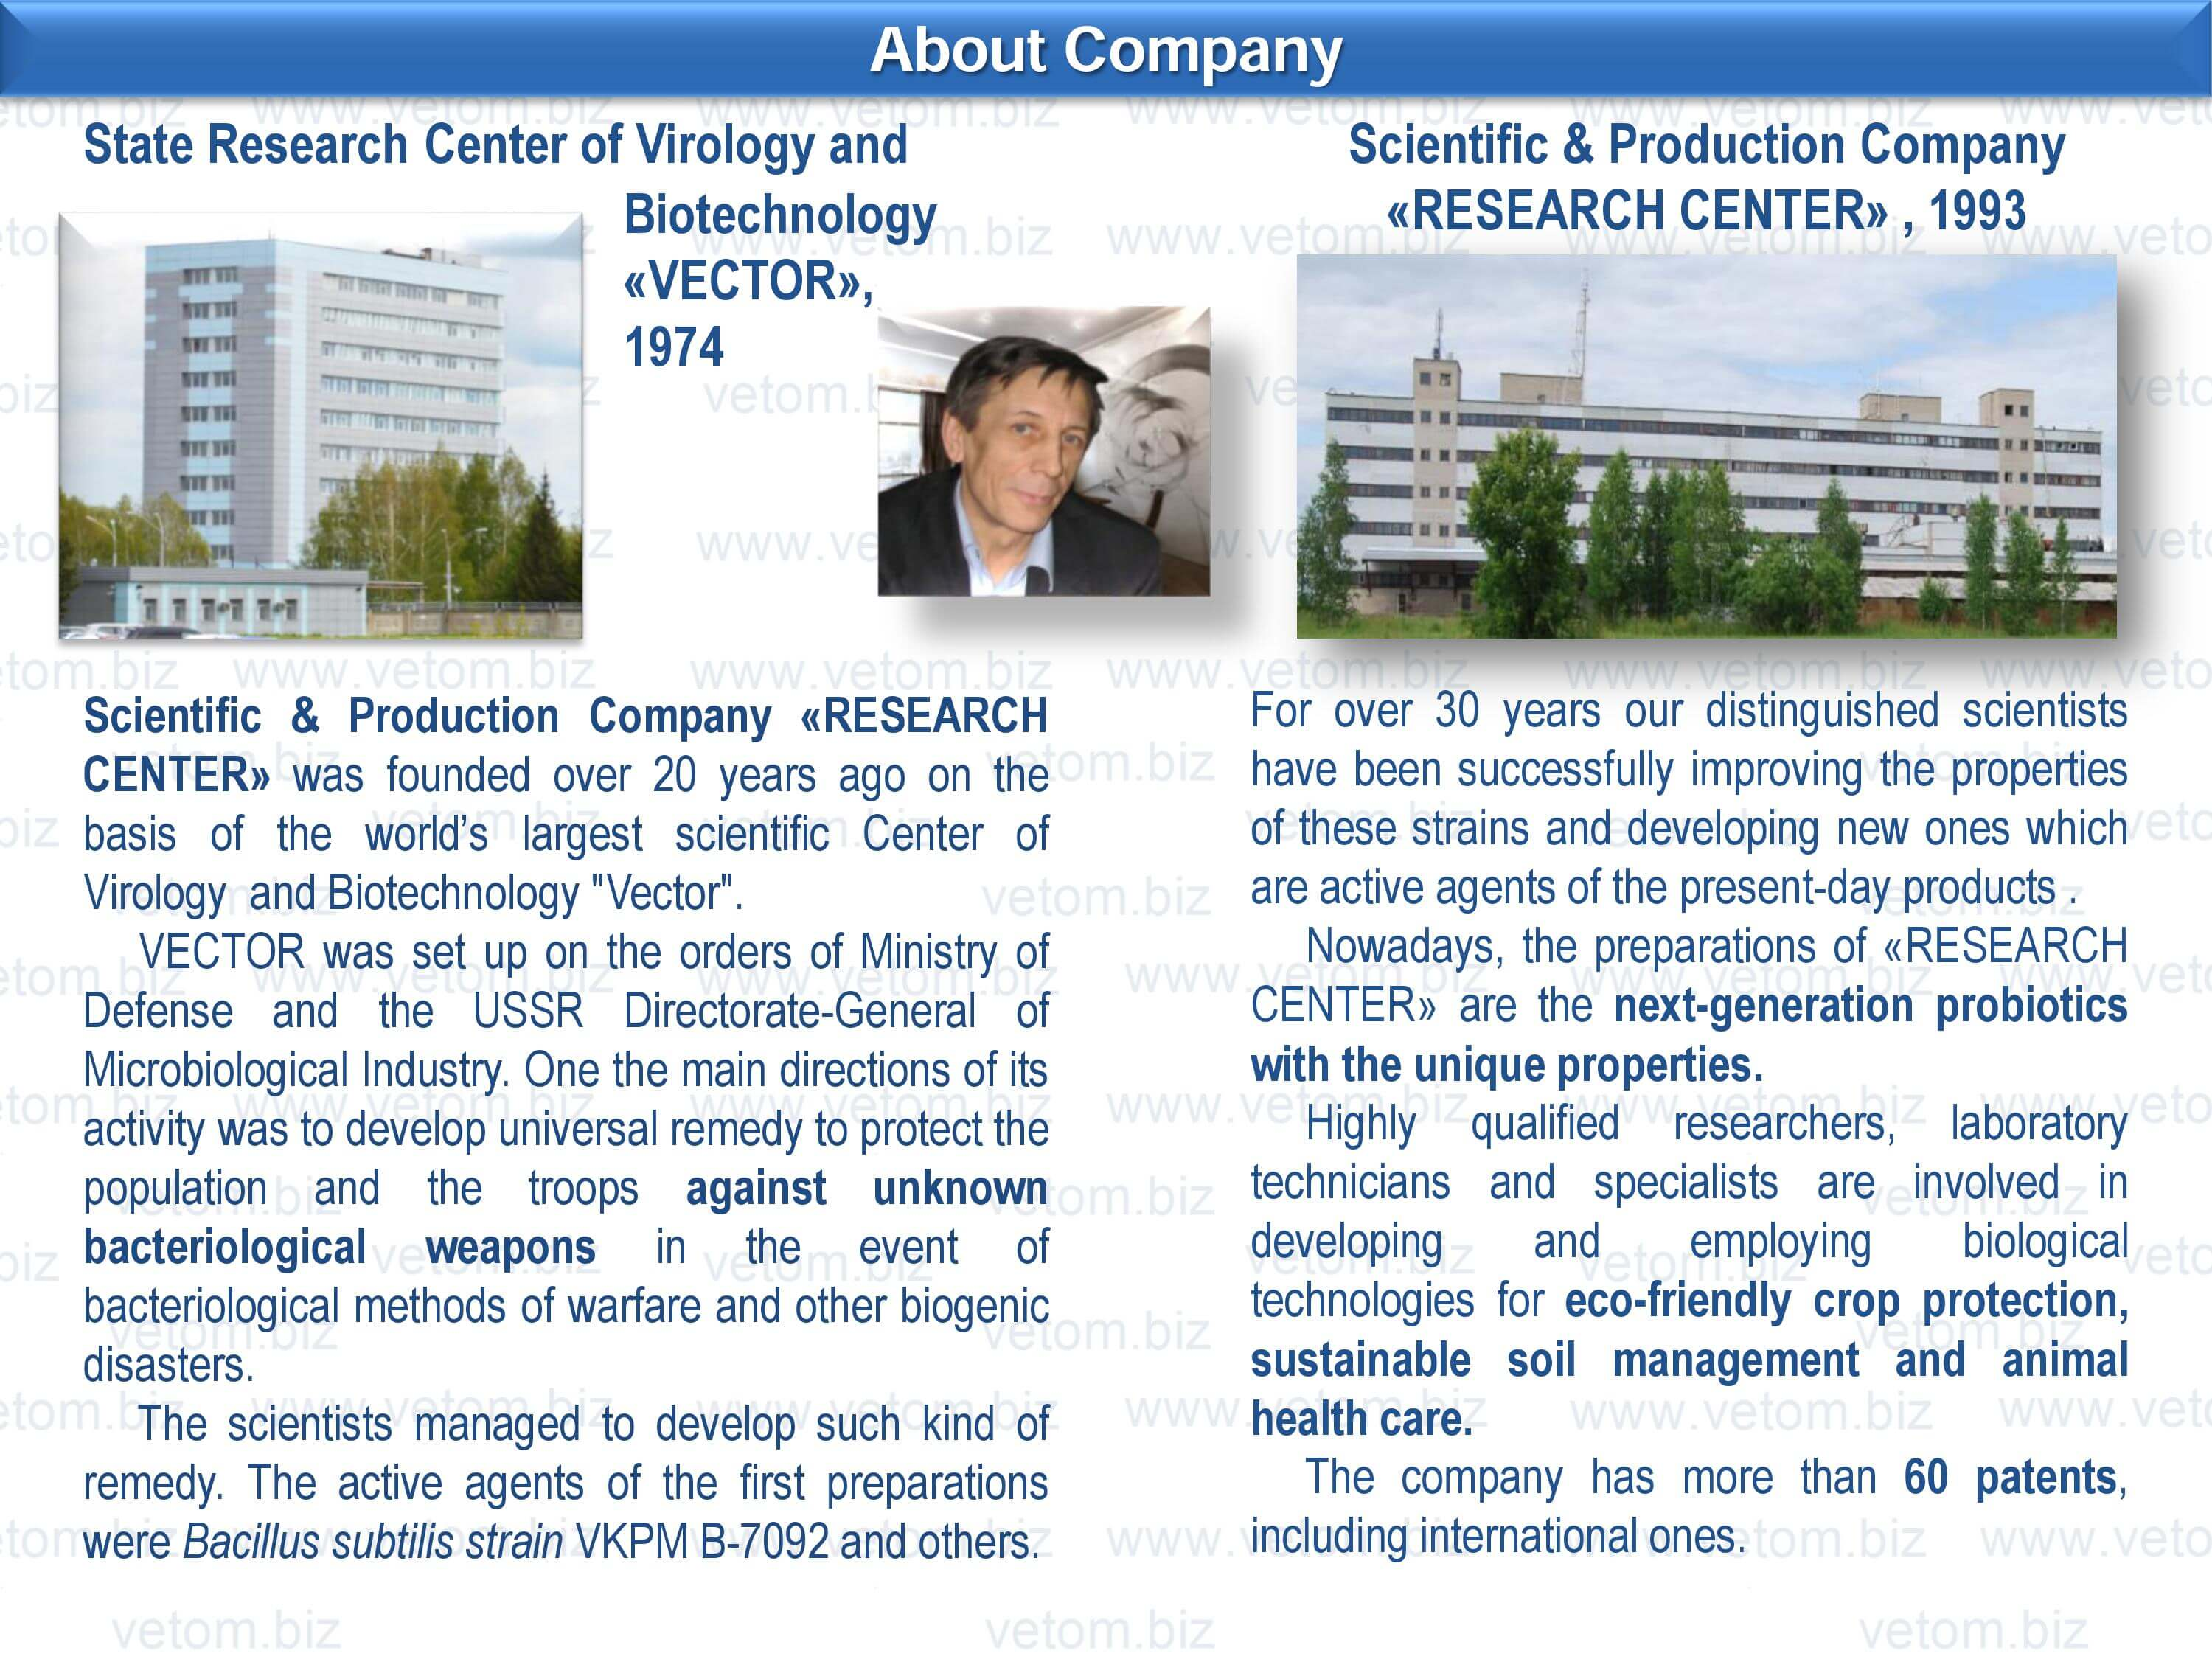 "History of the foundation of the ""Research Center"", whose preparations are the next-generation probiotics with unique properties"